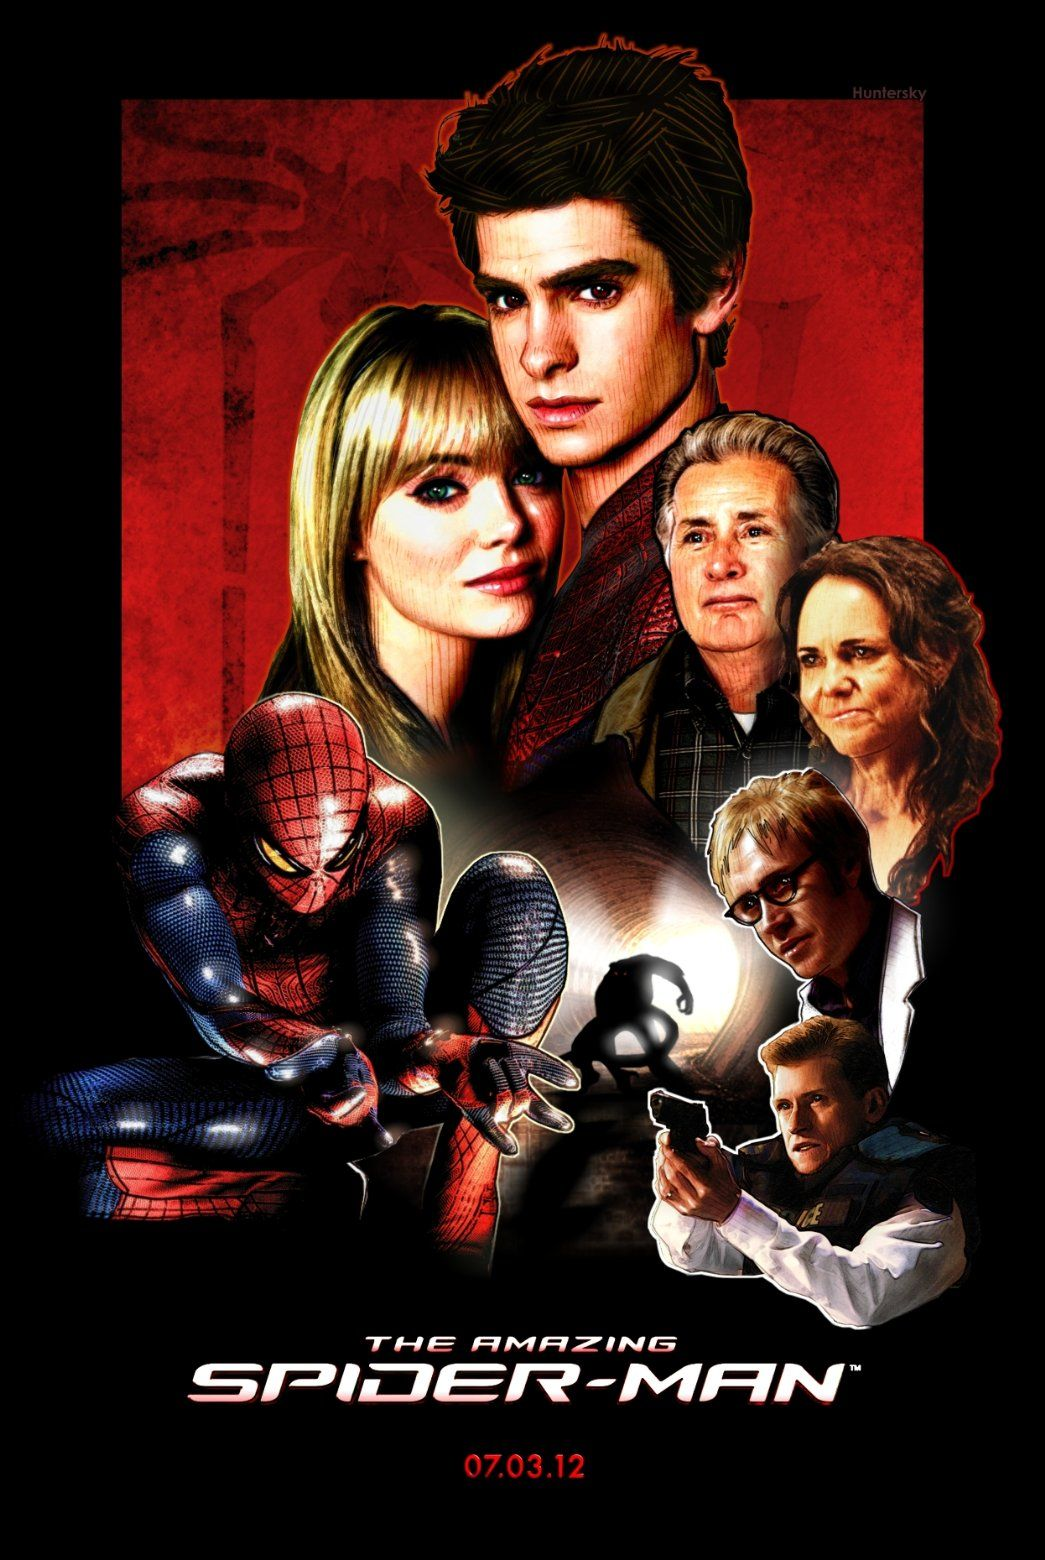 The Amazing Spider-Man Fan Movie Poster | Amazing spiderman movie, Amazing  spiderman, Spiderman